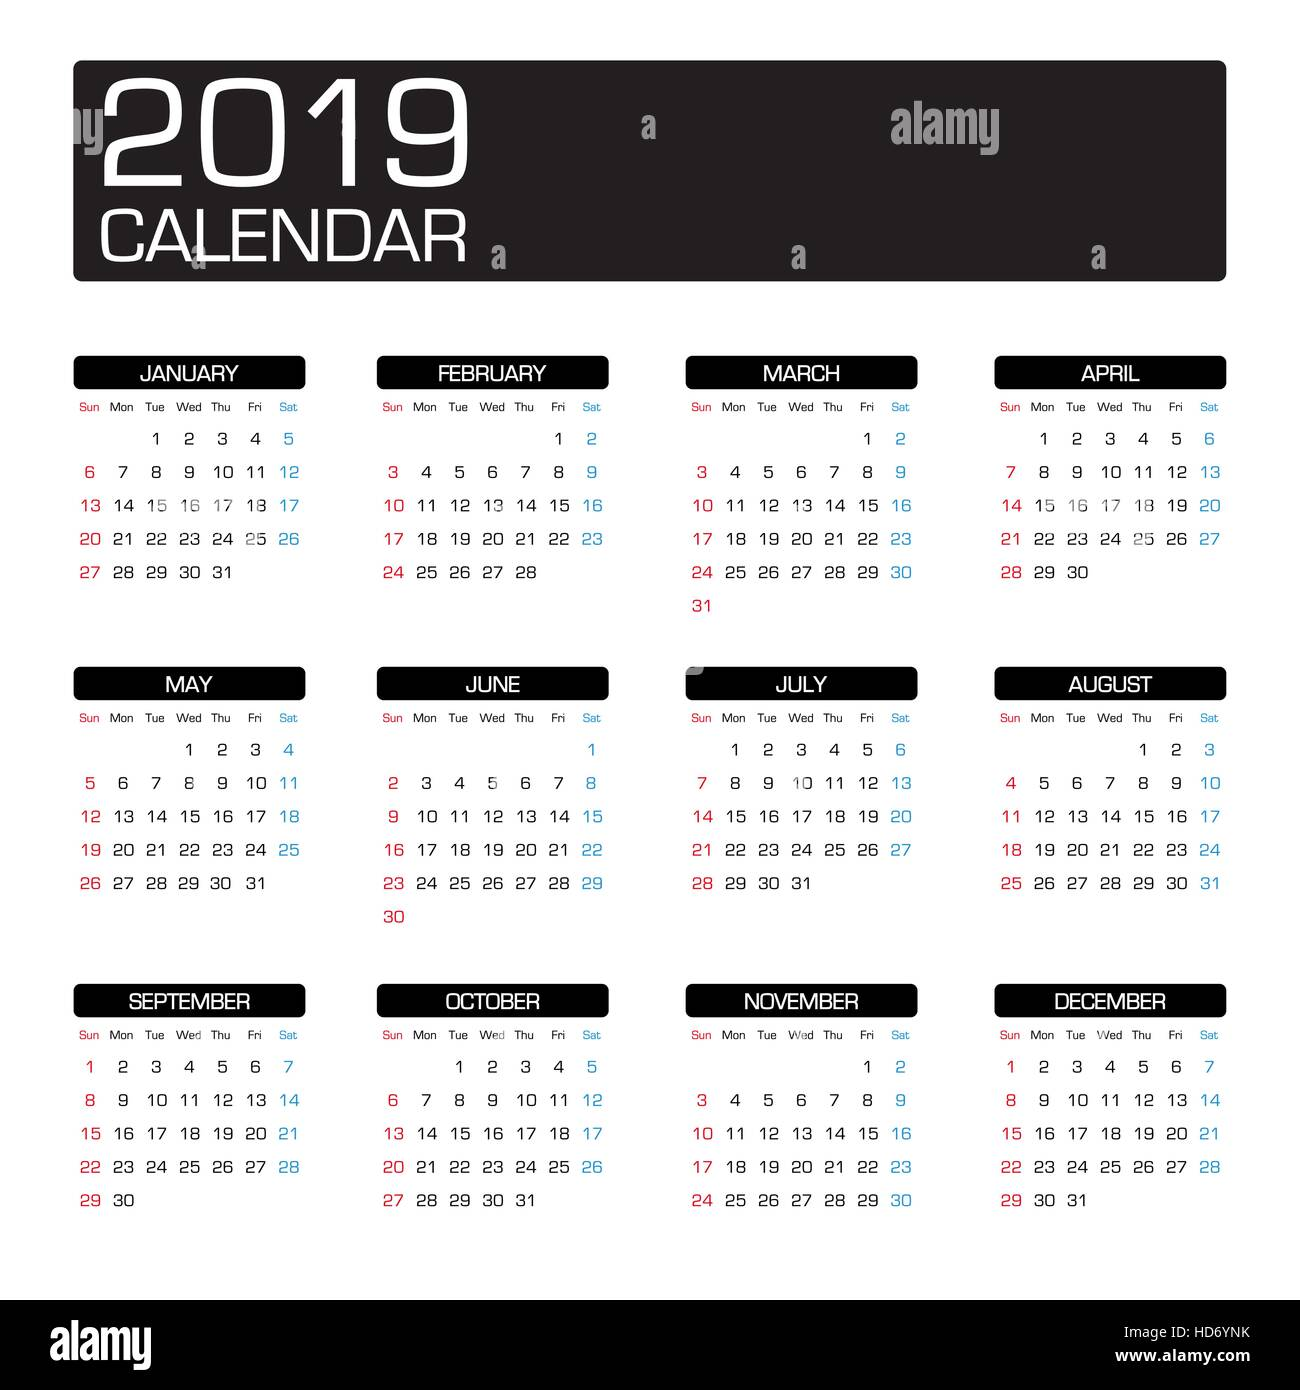 Free Comic Book Day 2018 List: July 2019 Calendar Stock Photos & July 2019 Calendar Stock